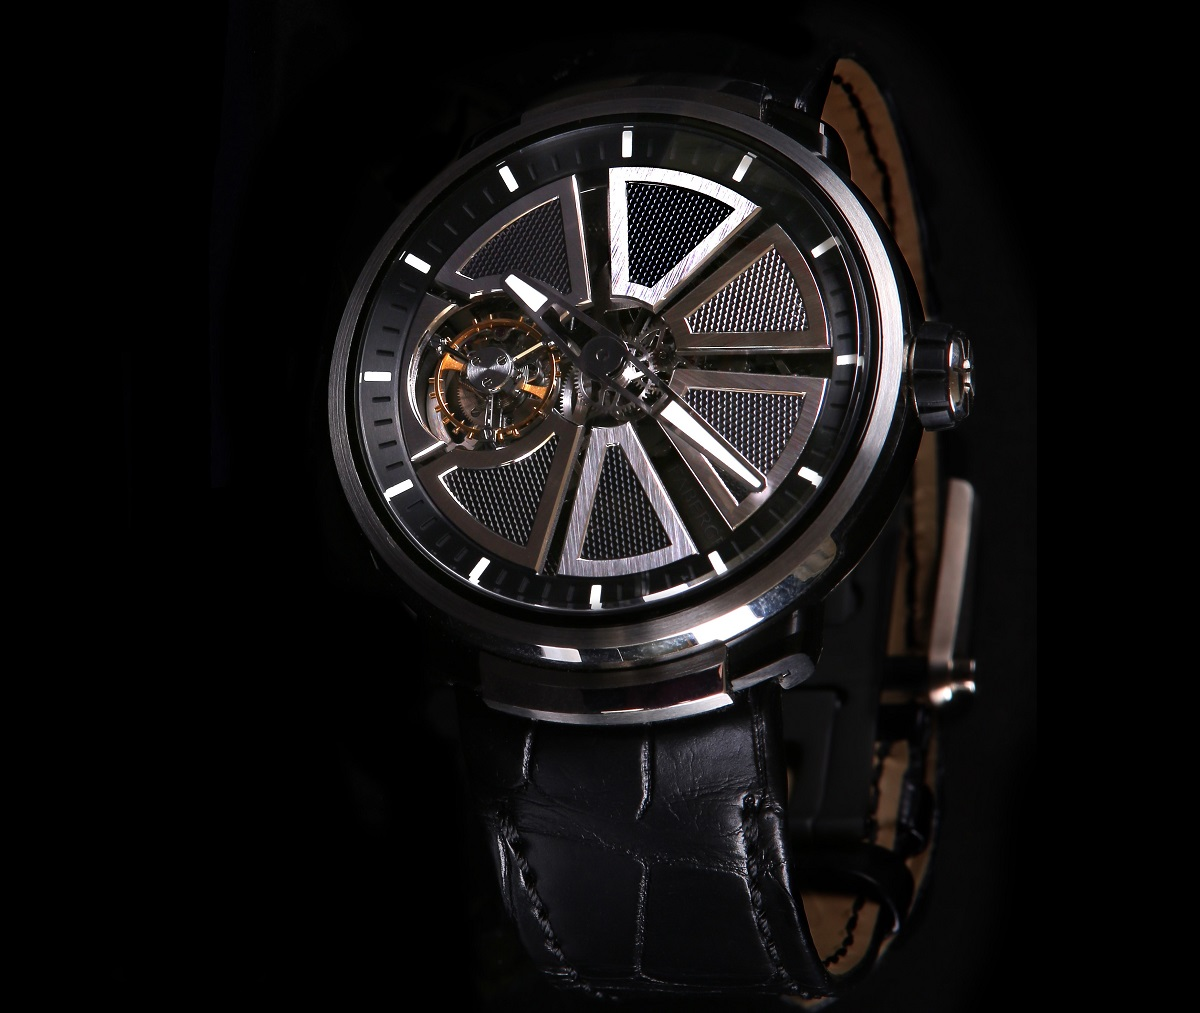 Fabergé Visionnaire Fake watch